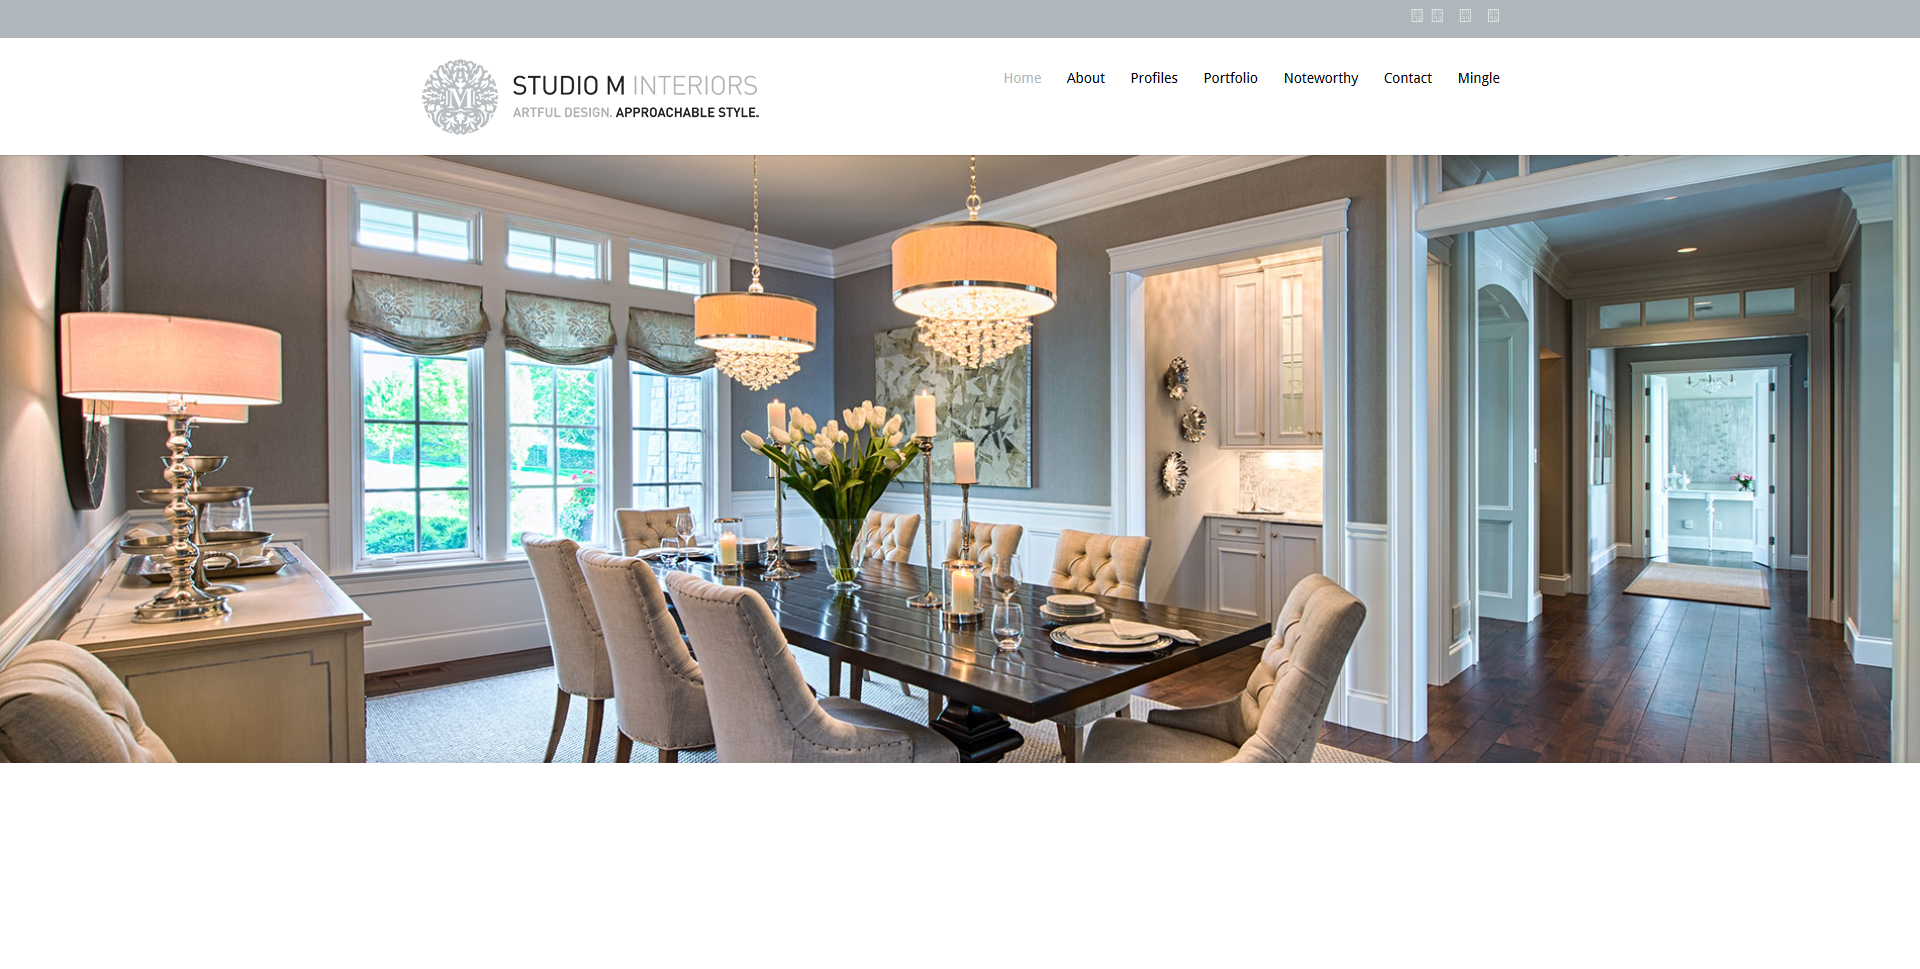 Studio M Interiors Website, Plymouth, MN